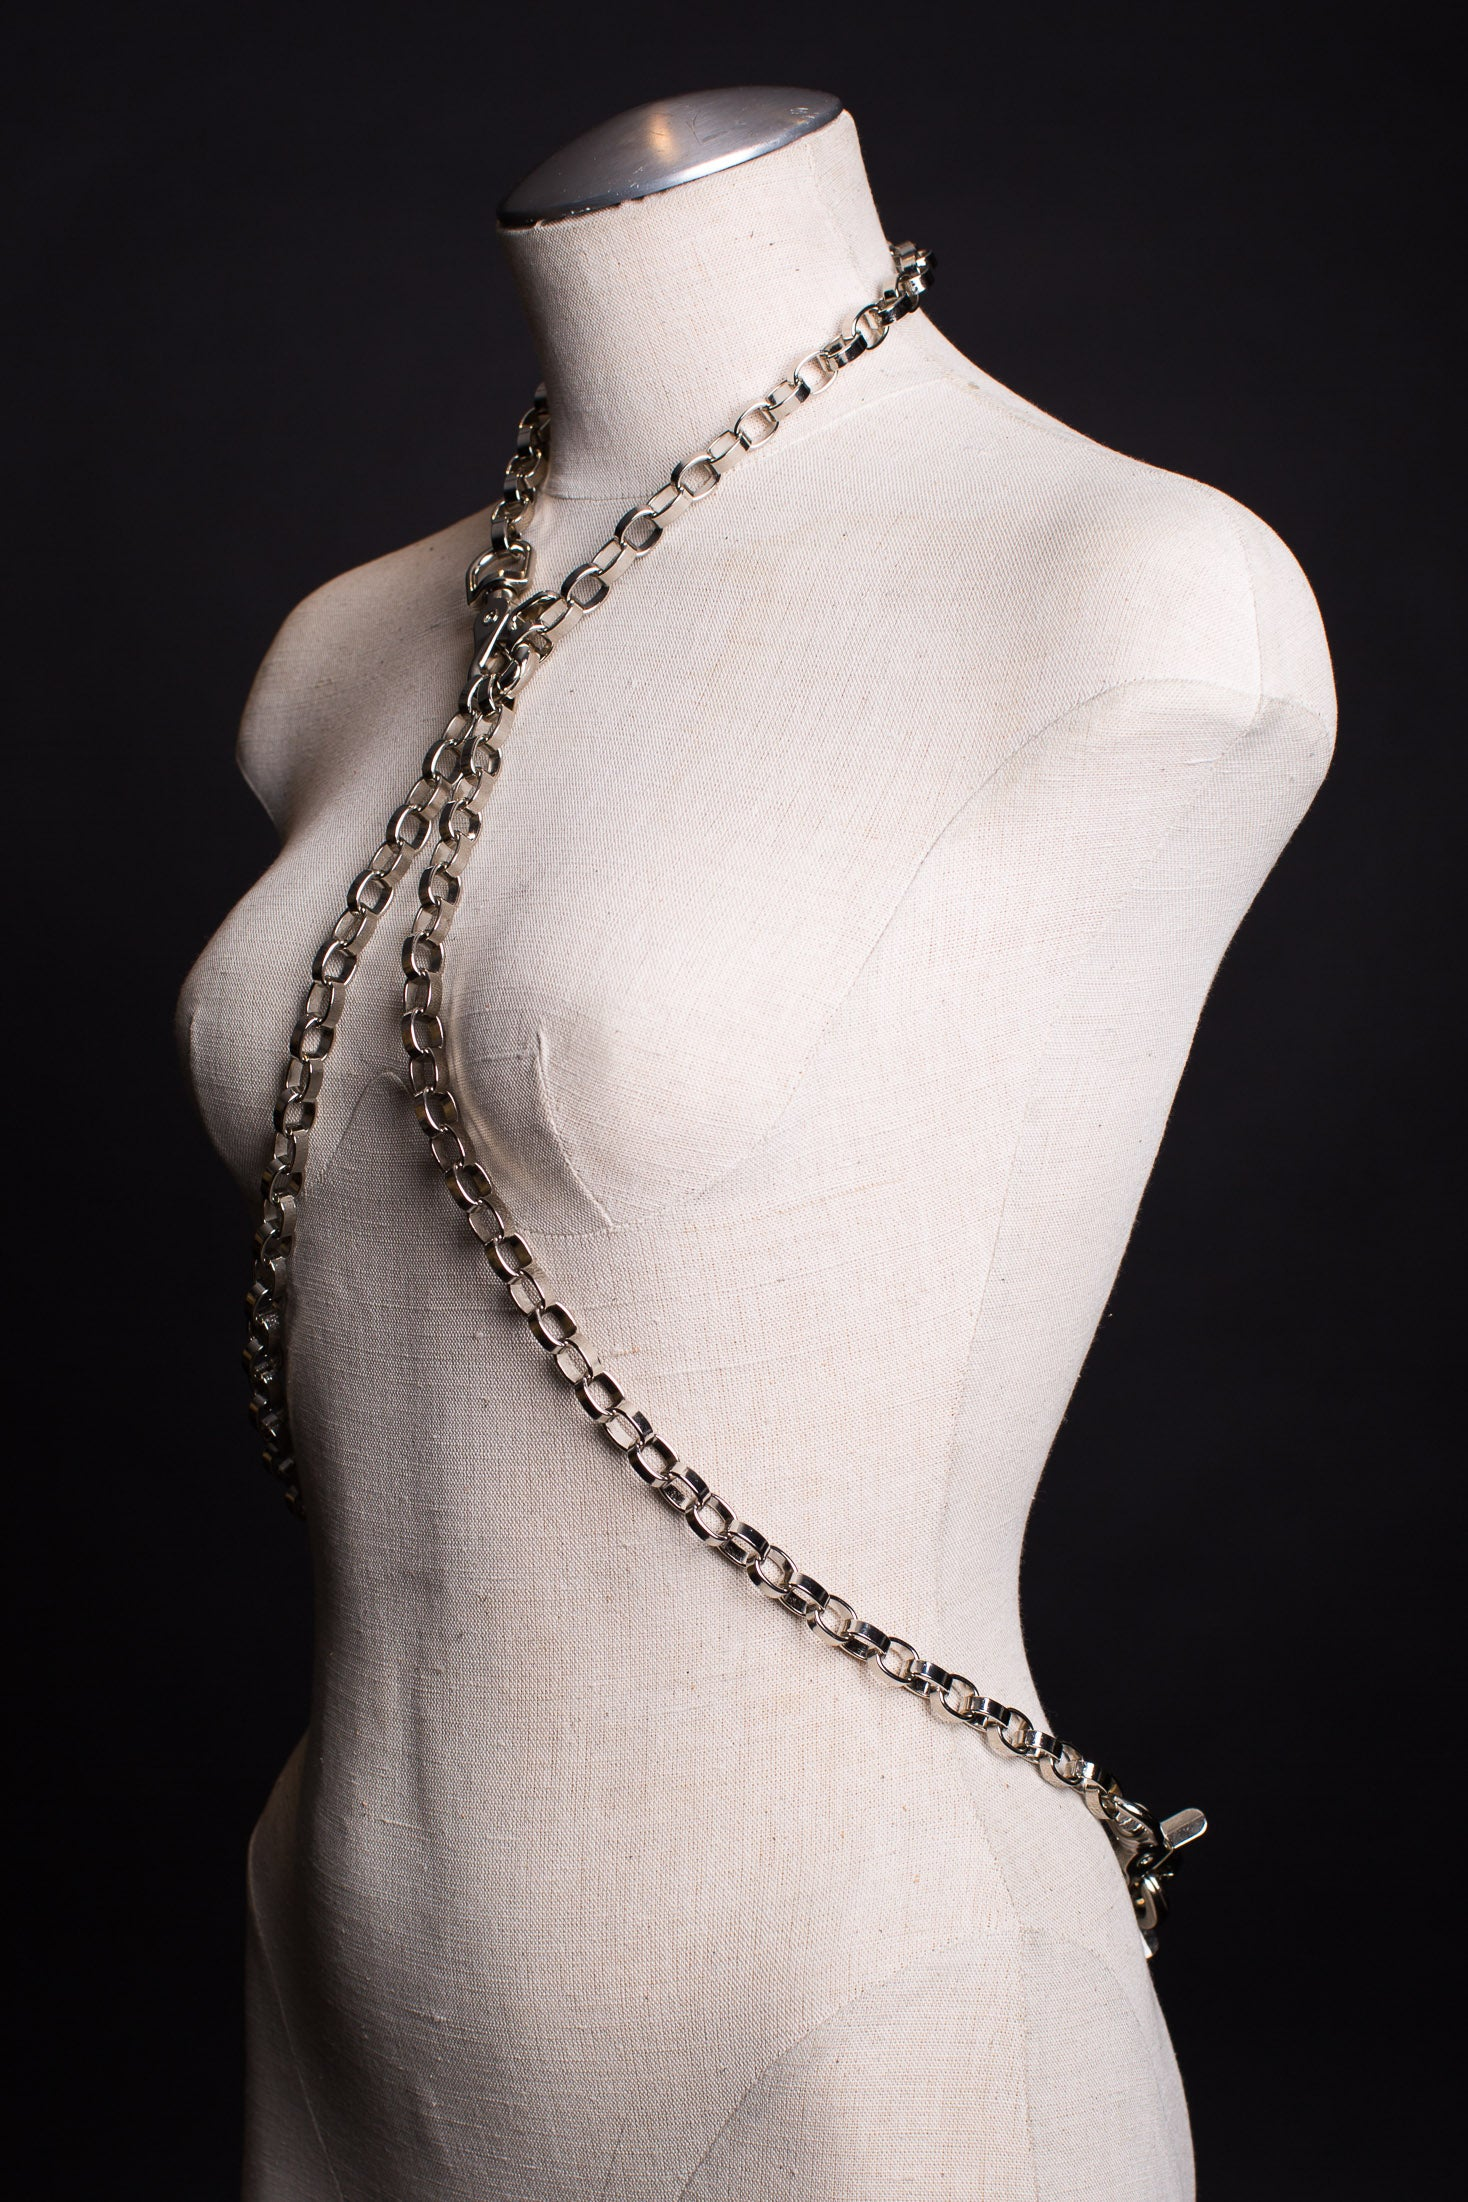 LINKED UP Body Chain